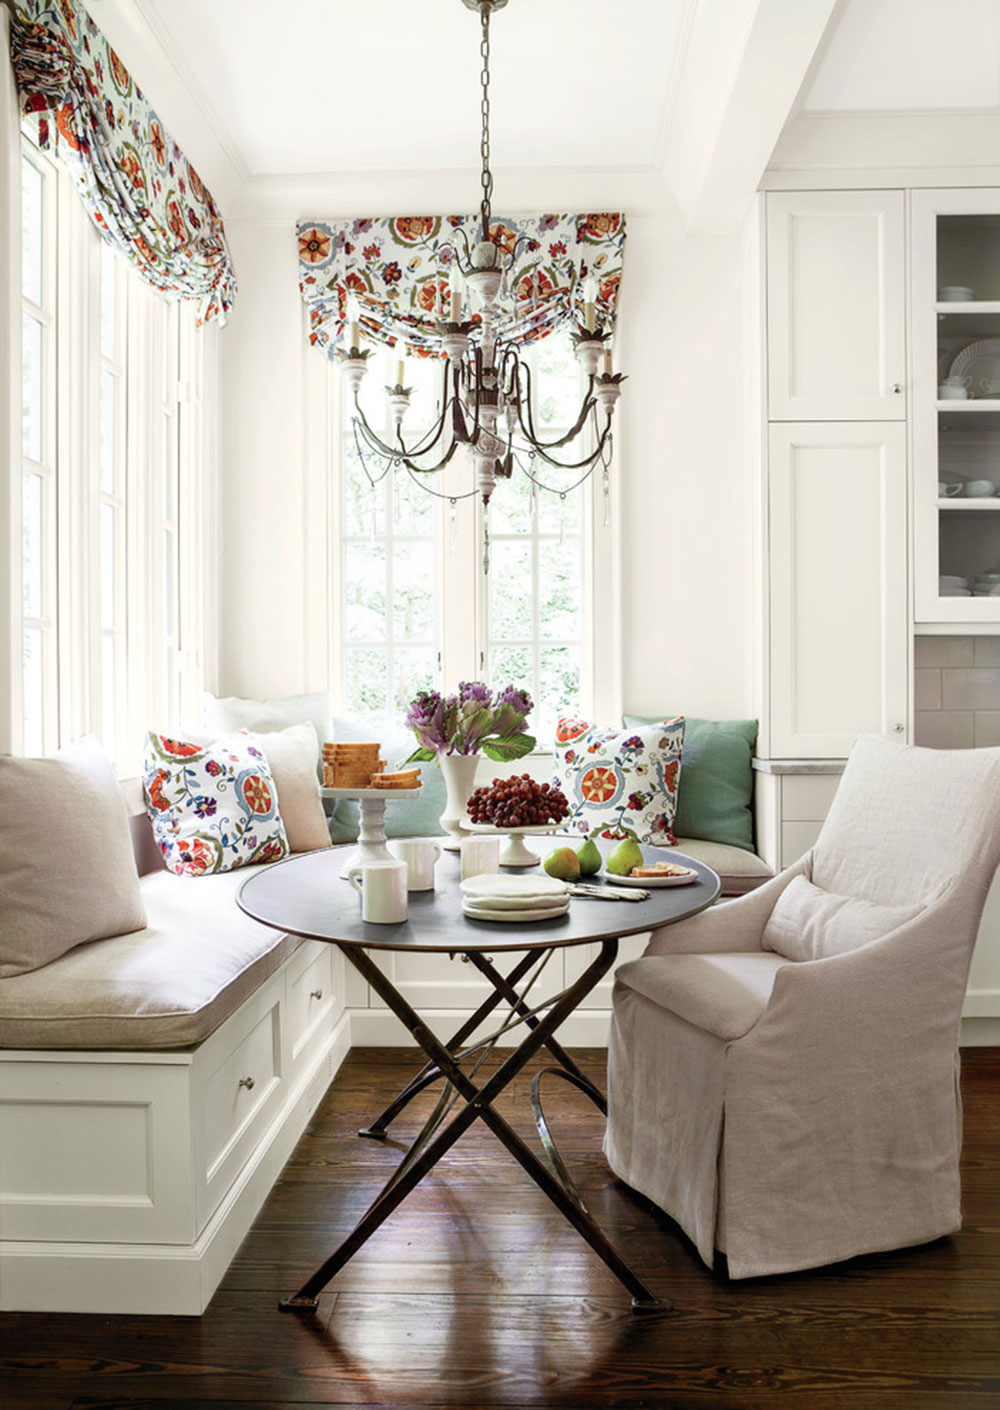 Breakfast-Nook-Design-Ideas-for-Awesome-Mornings8 Breakfast Nook-Design-Ideas for Awesome Mornings